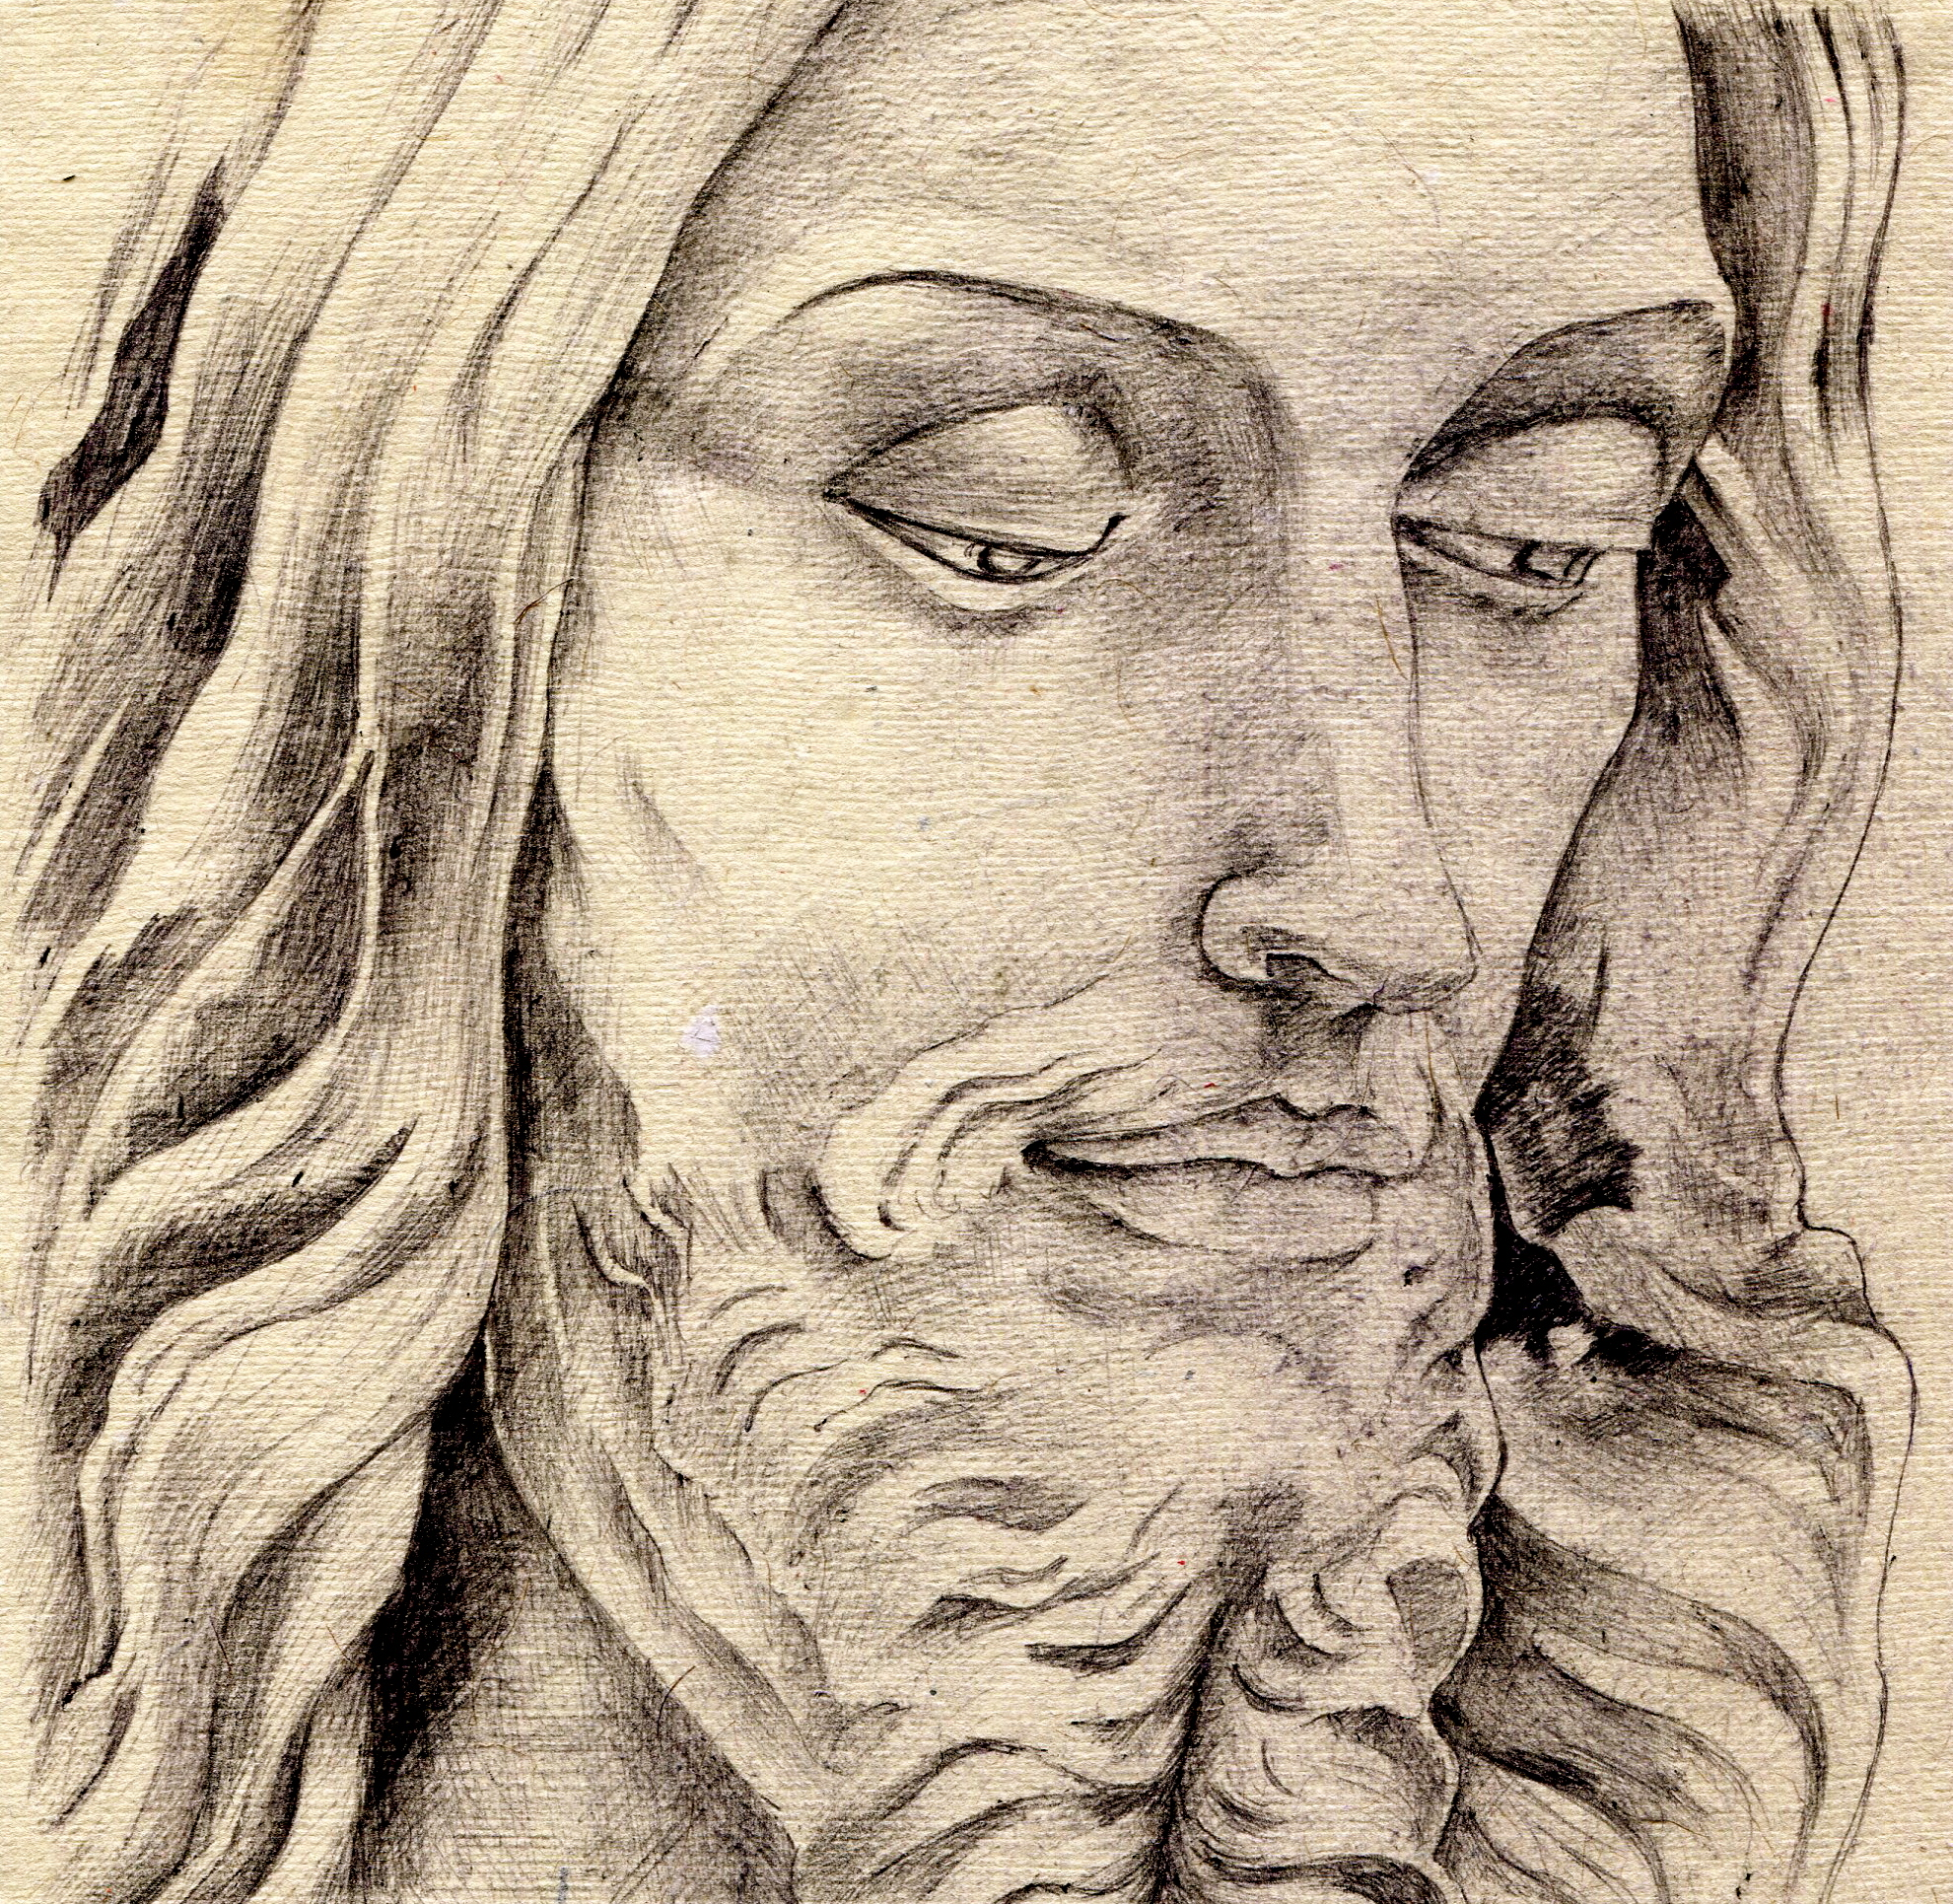 Jesus face pencil drawing at getdrawings free for personal use 1981x1931 pencil drawings of jesus jesus altavistaventures Gallery